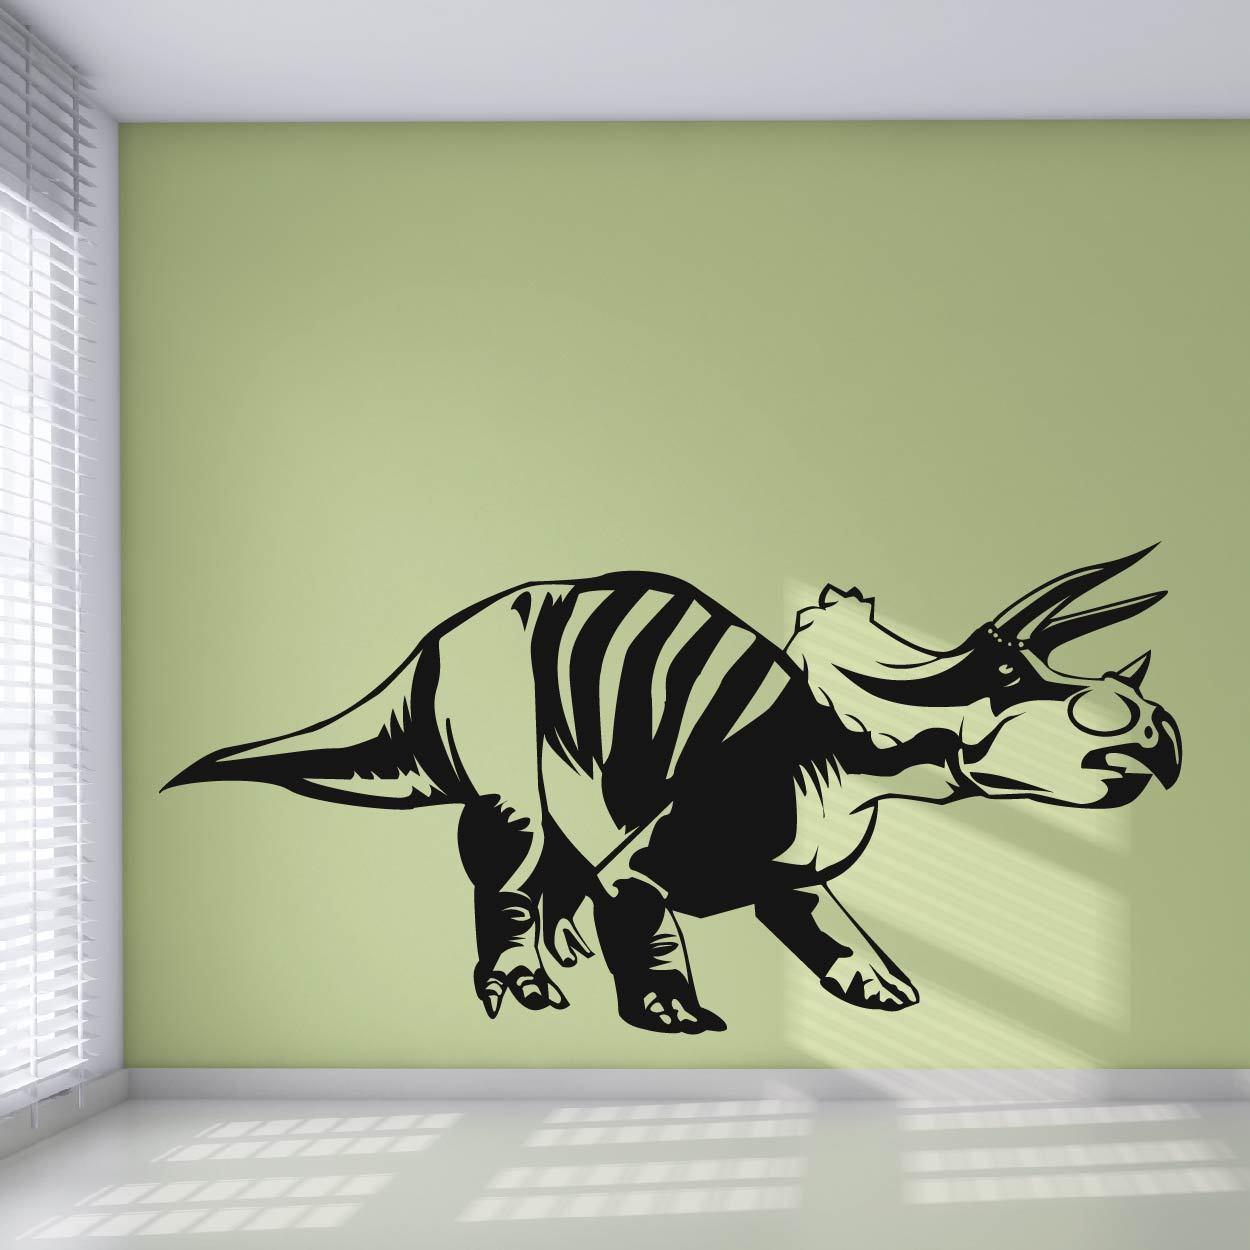 Einiosaurus Dinosaur Wall Sticker - Apex Stickers